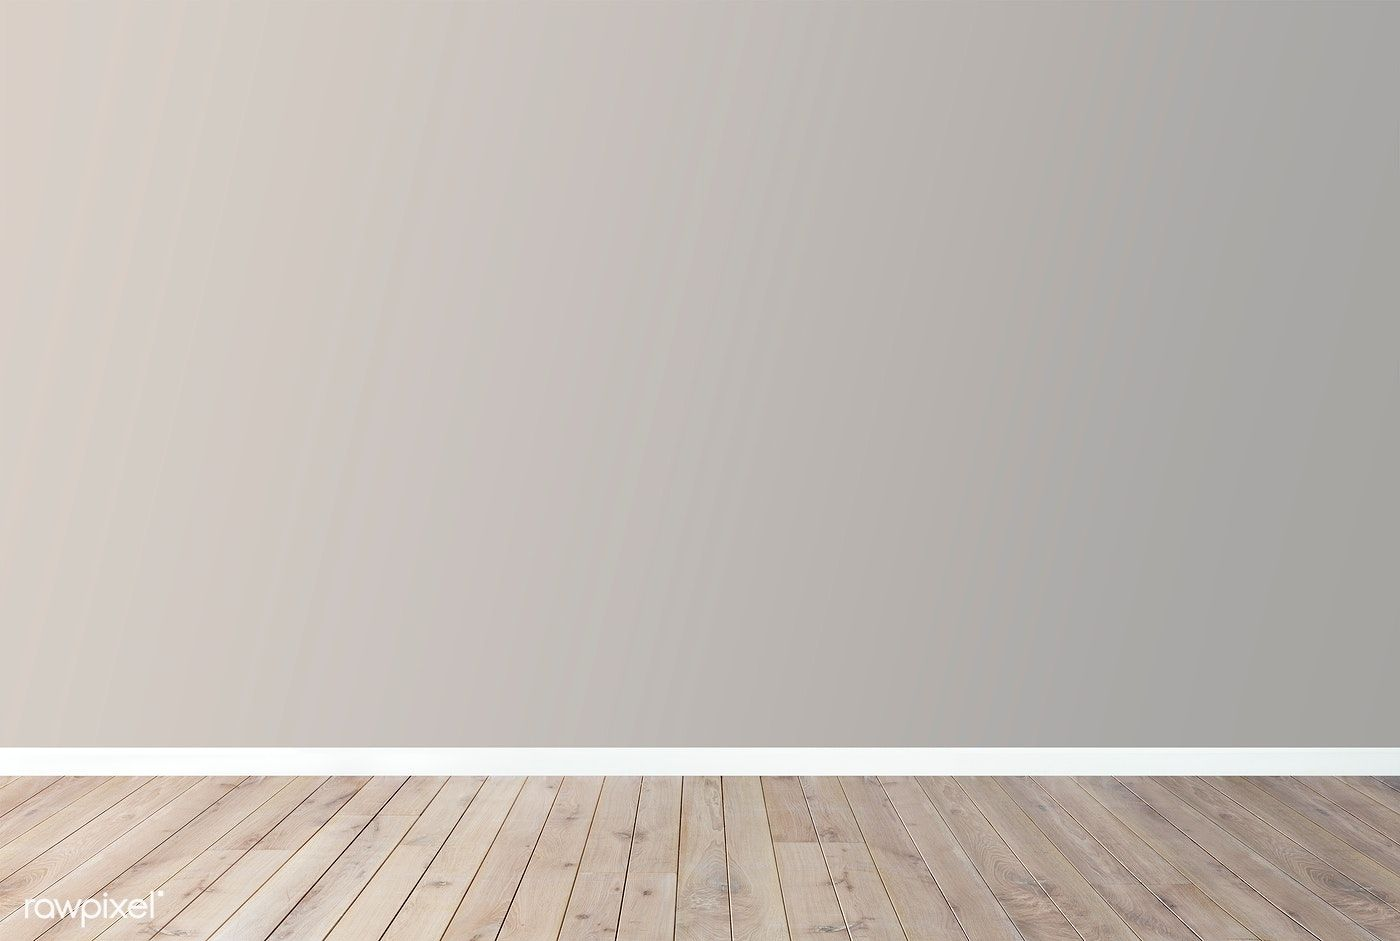 Gray Blank Concrete Wall Mockup Free Image By Rawpixel Com Aom